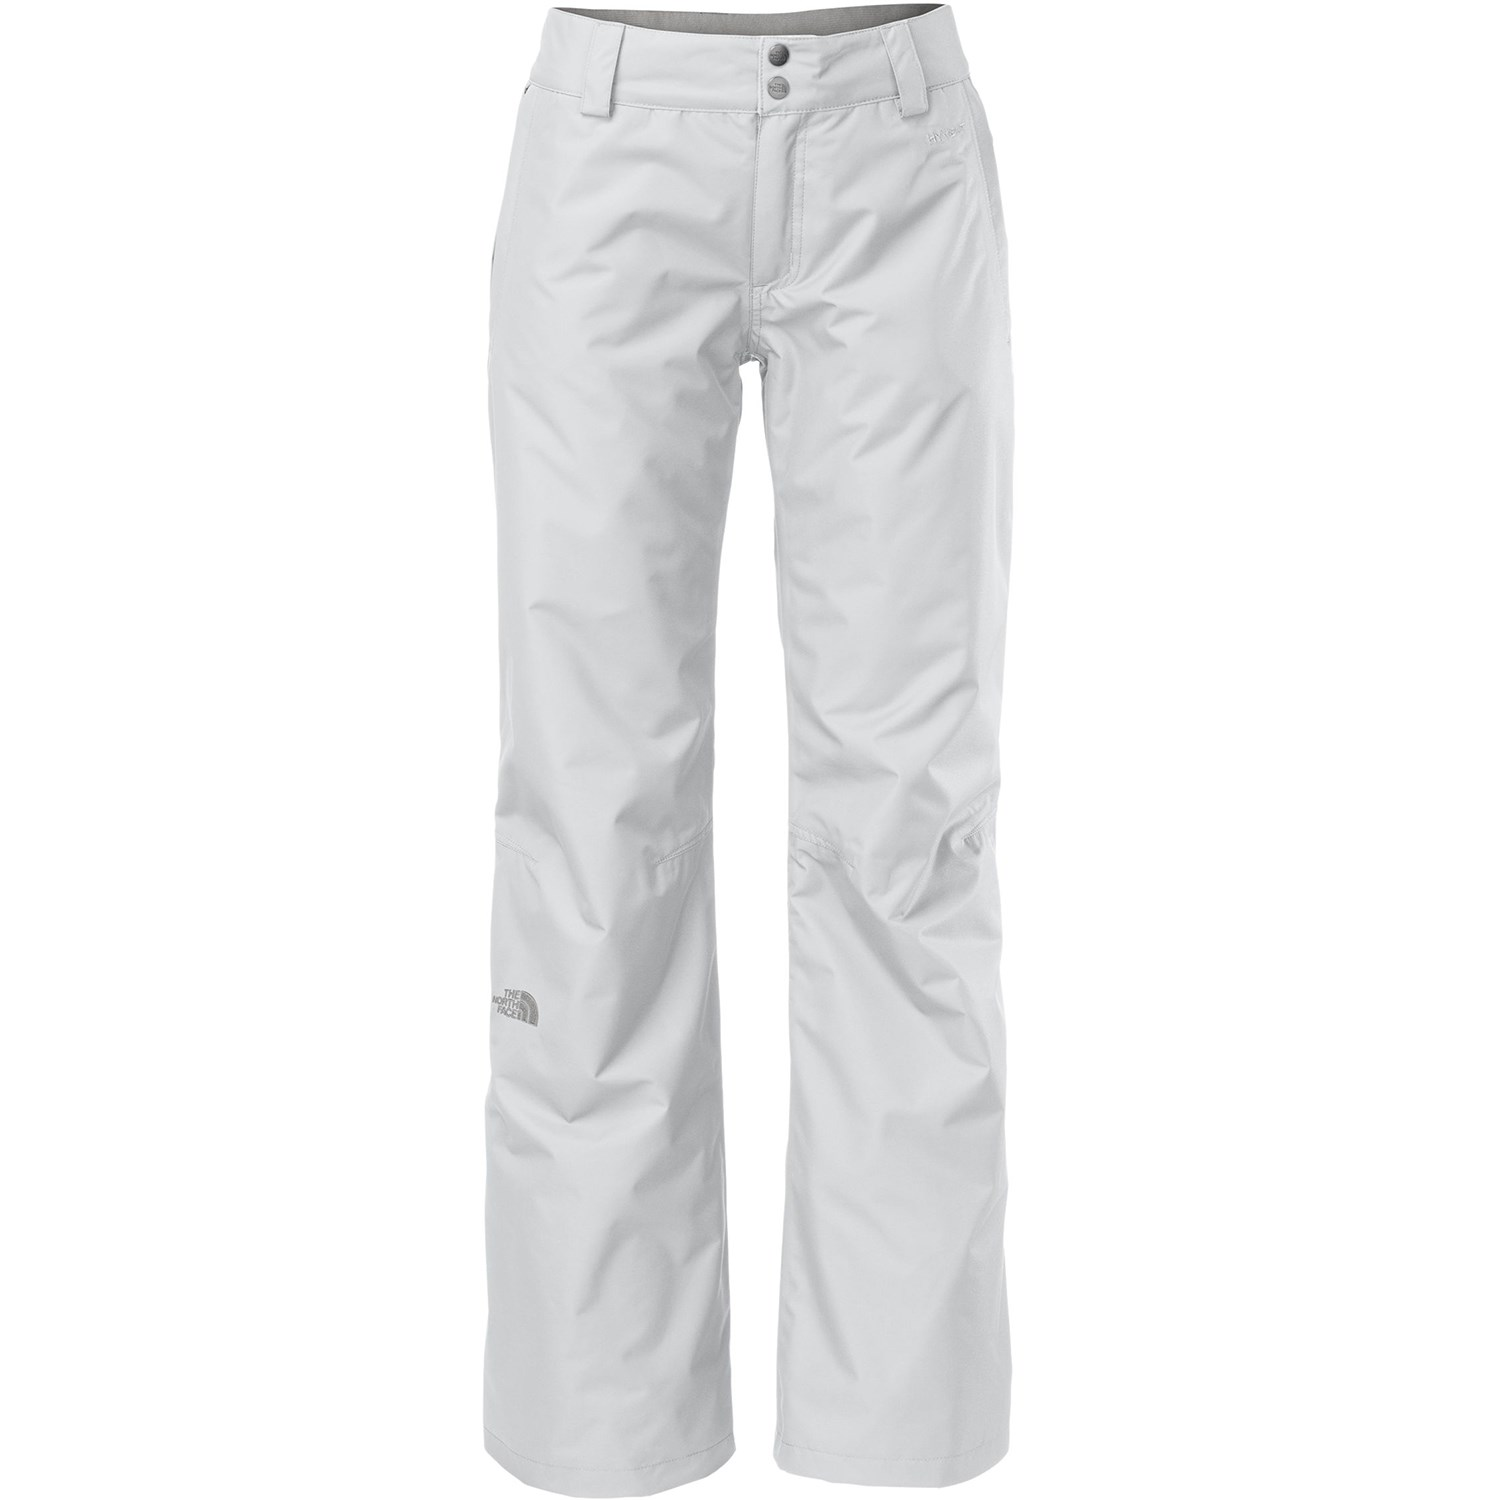 3b5c62d6c The North Face Sally Pants - Women's | evo